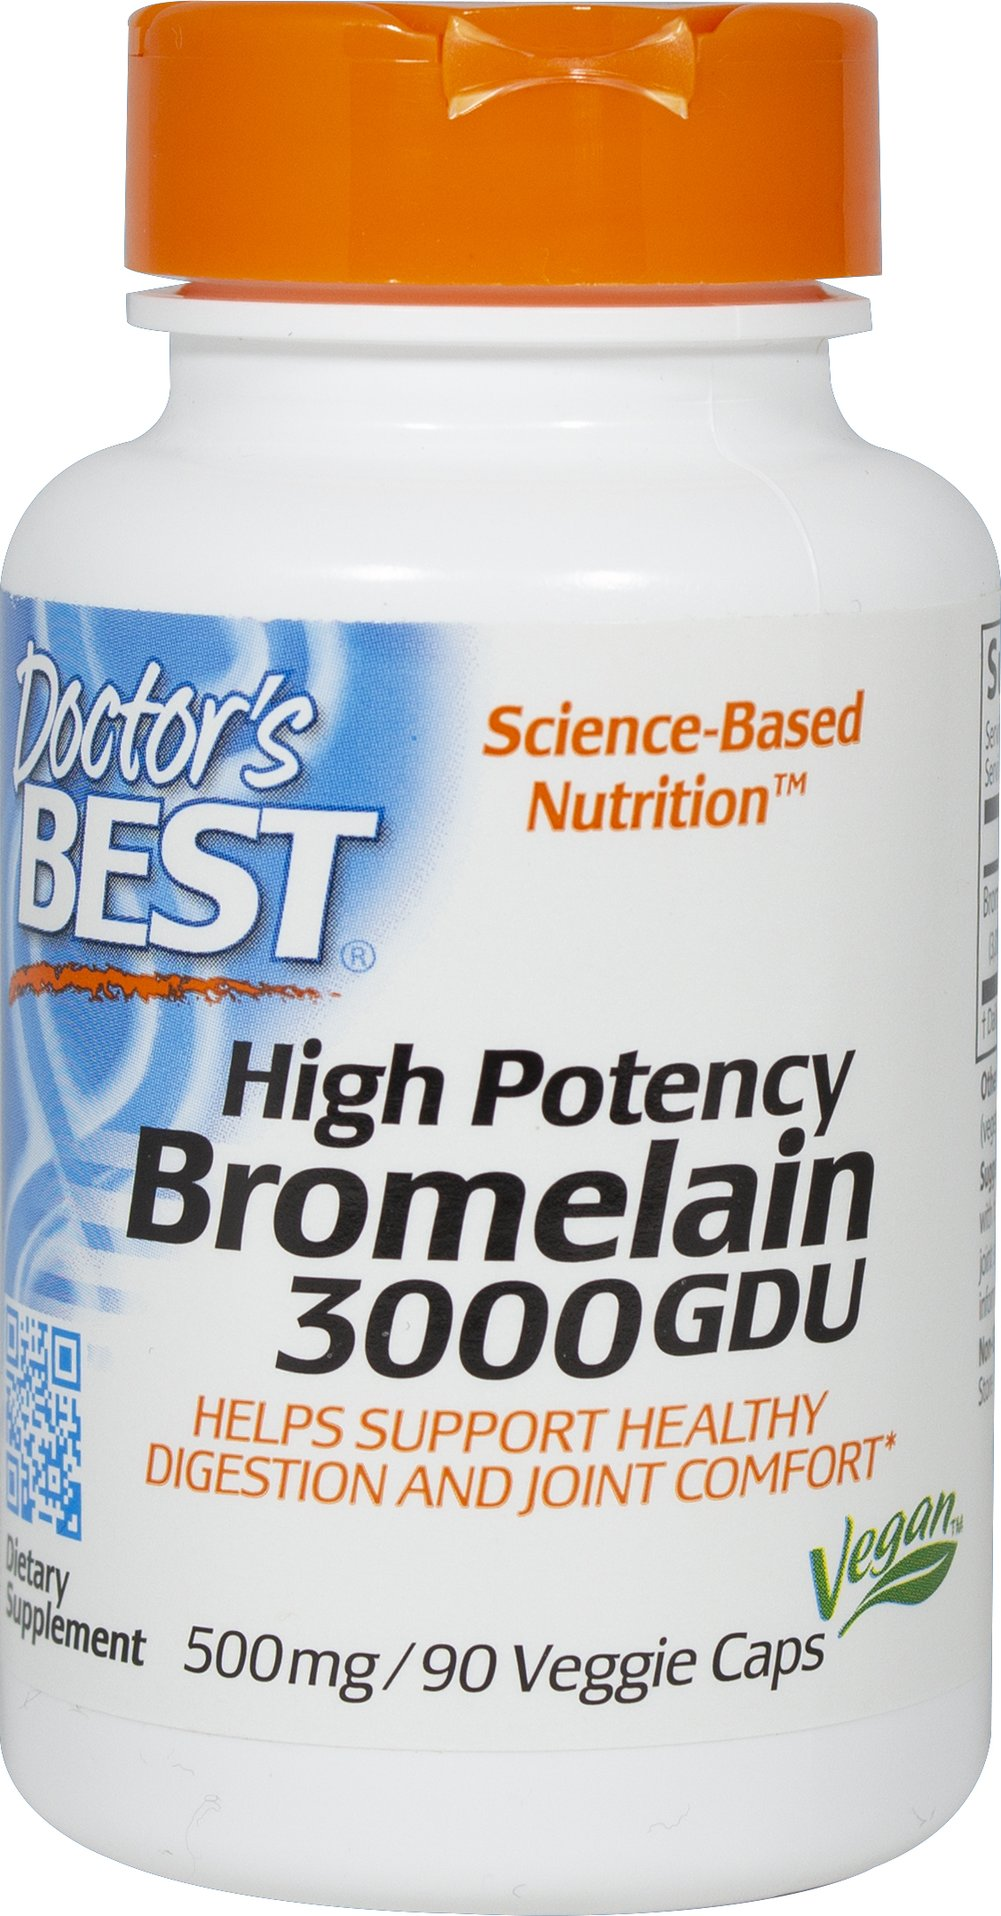 "Best 3000 GDU Bromelain <p><strong><span style=""color:black;"">From the Manufacturer:</span></strong></p><p>Bromelain is an enzyme derived from pineapple stem and fruit that has proteolytic (protein digesting) properties. Bromelain is renowned for its digestion-enhancing characteristics and also has beneficial systemic effects within the body.* <s><span style=""color:red;""></span></s></p><p><span s"